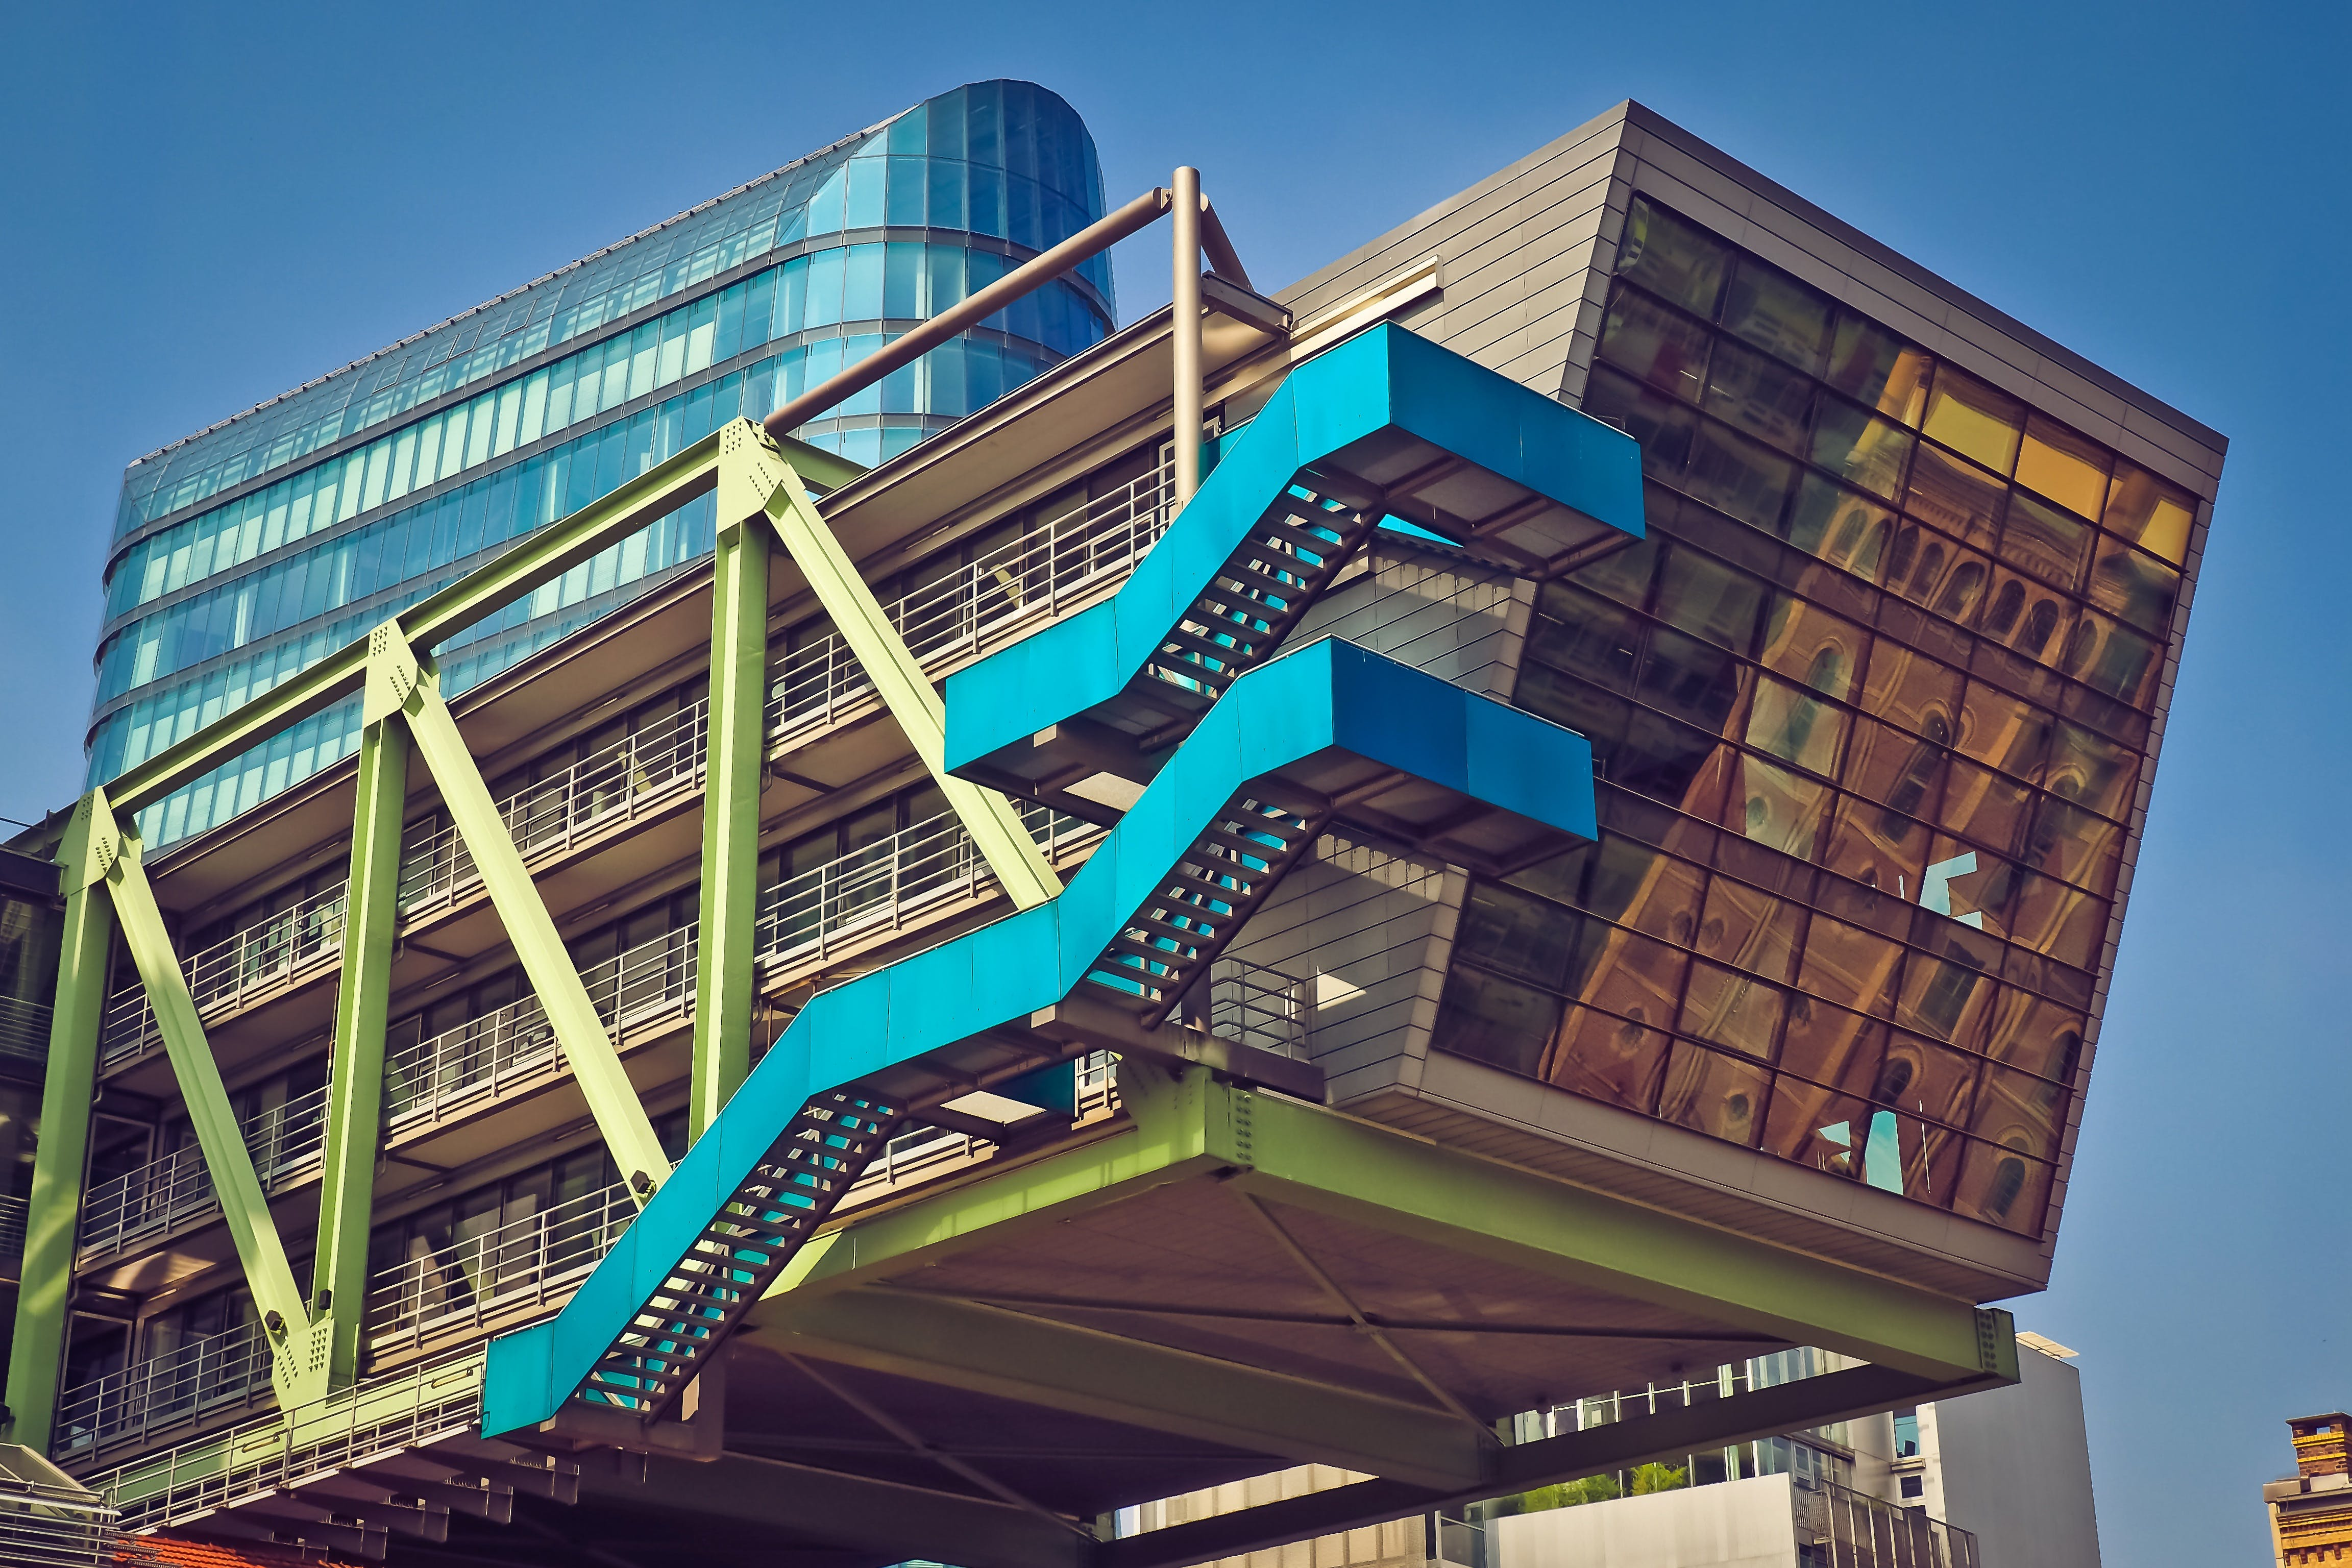 Brown Blue and Green Building With Blue Staircase